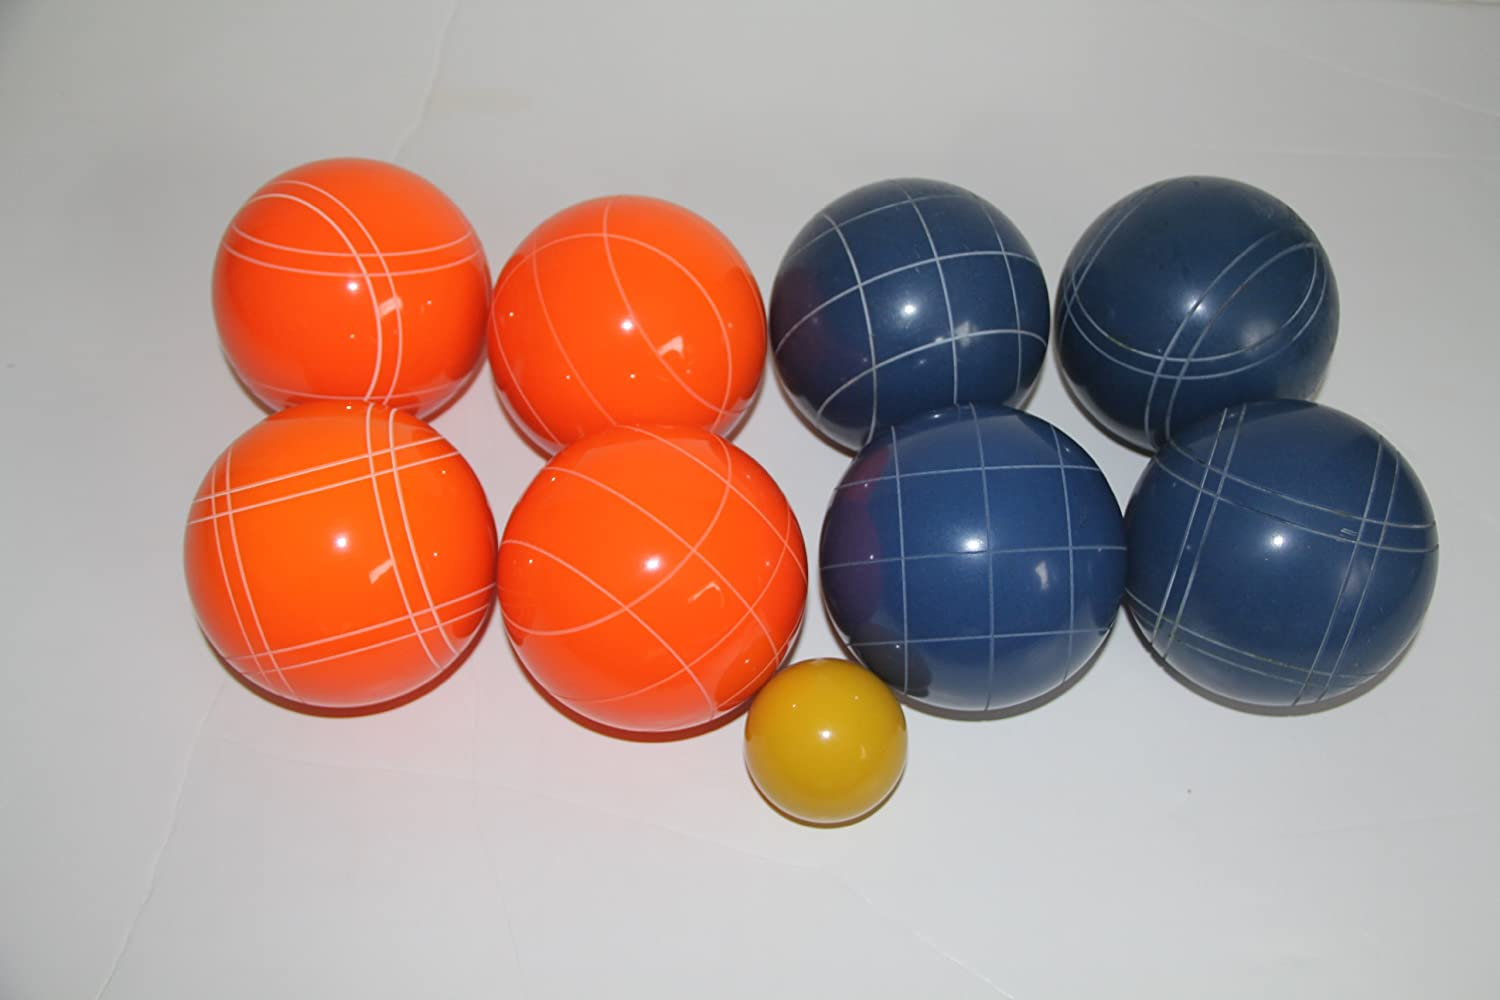 Premium Quality EPCO Tournament Bocce Set - 107mm Blue and Orange Bocce Balls...